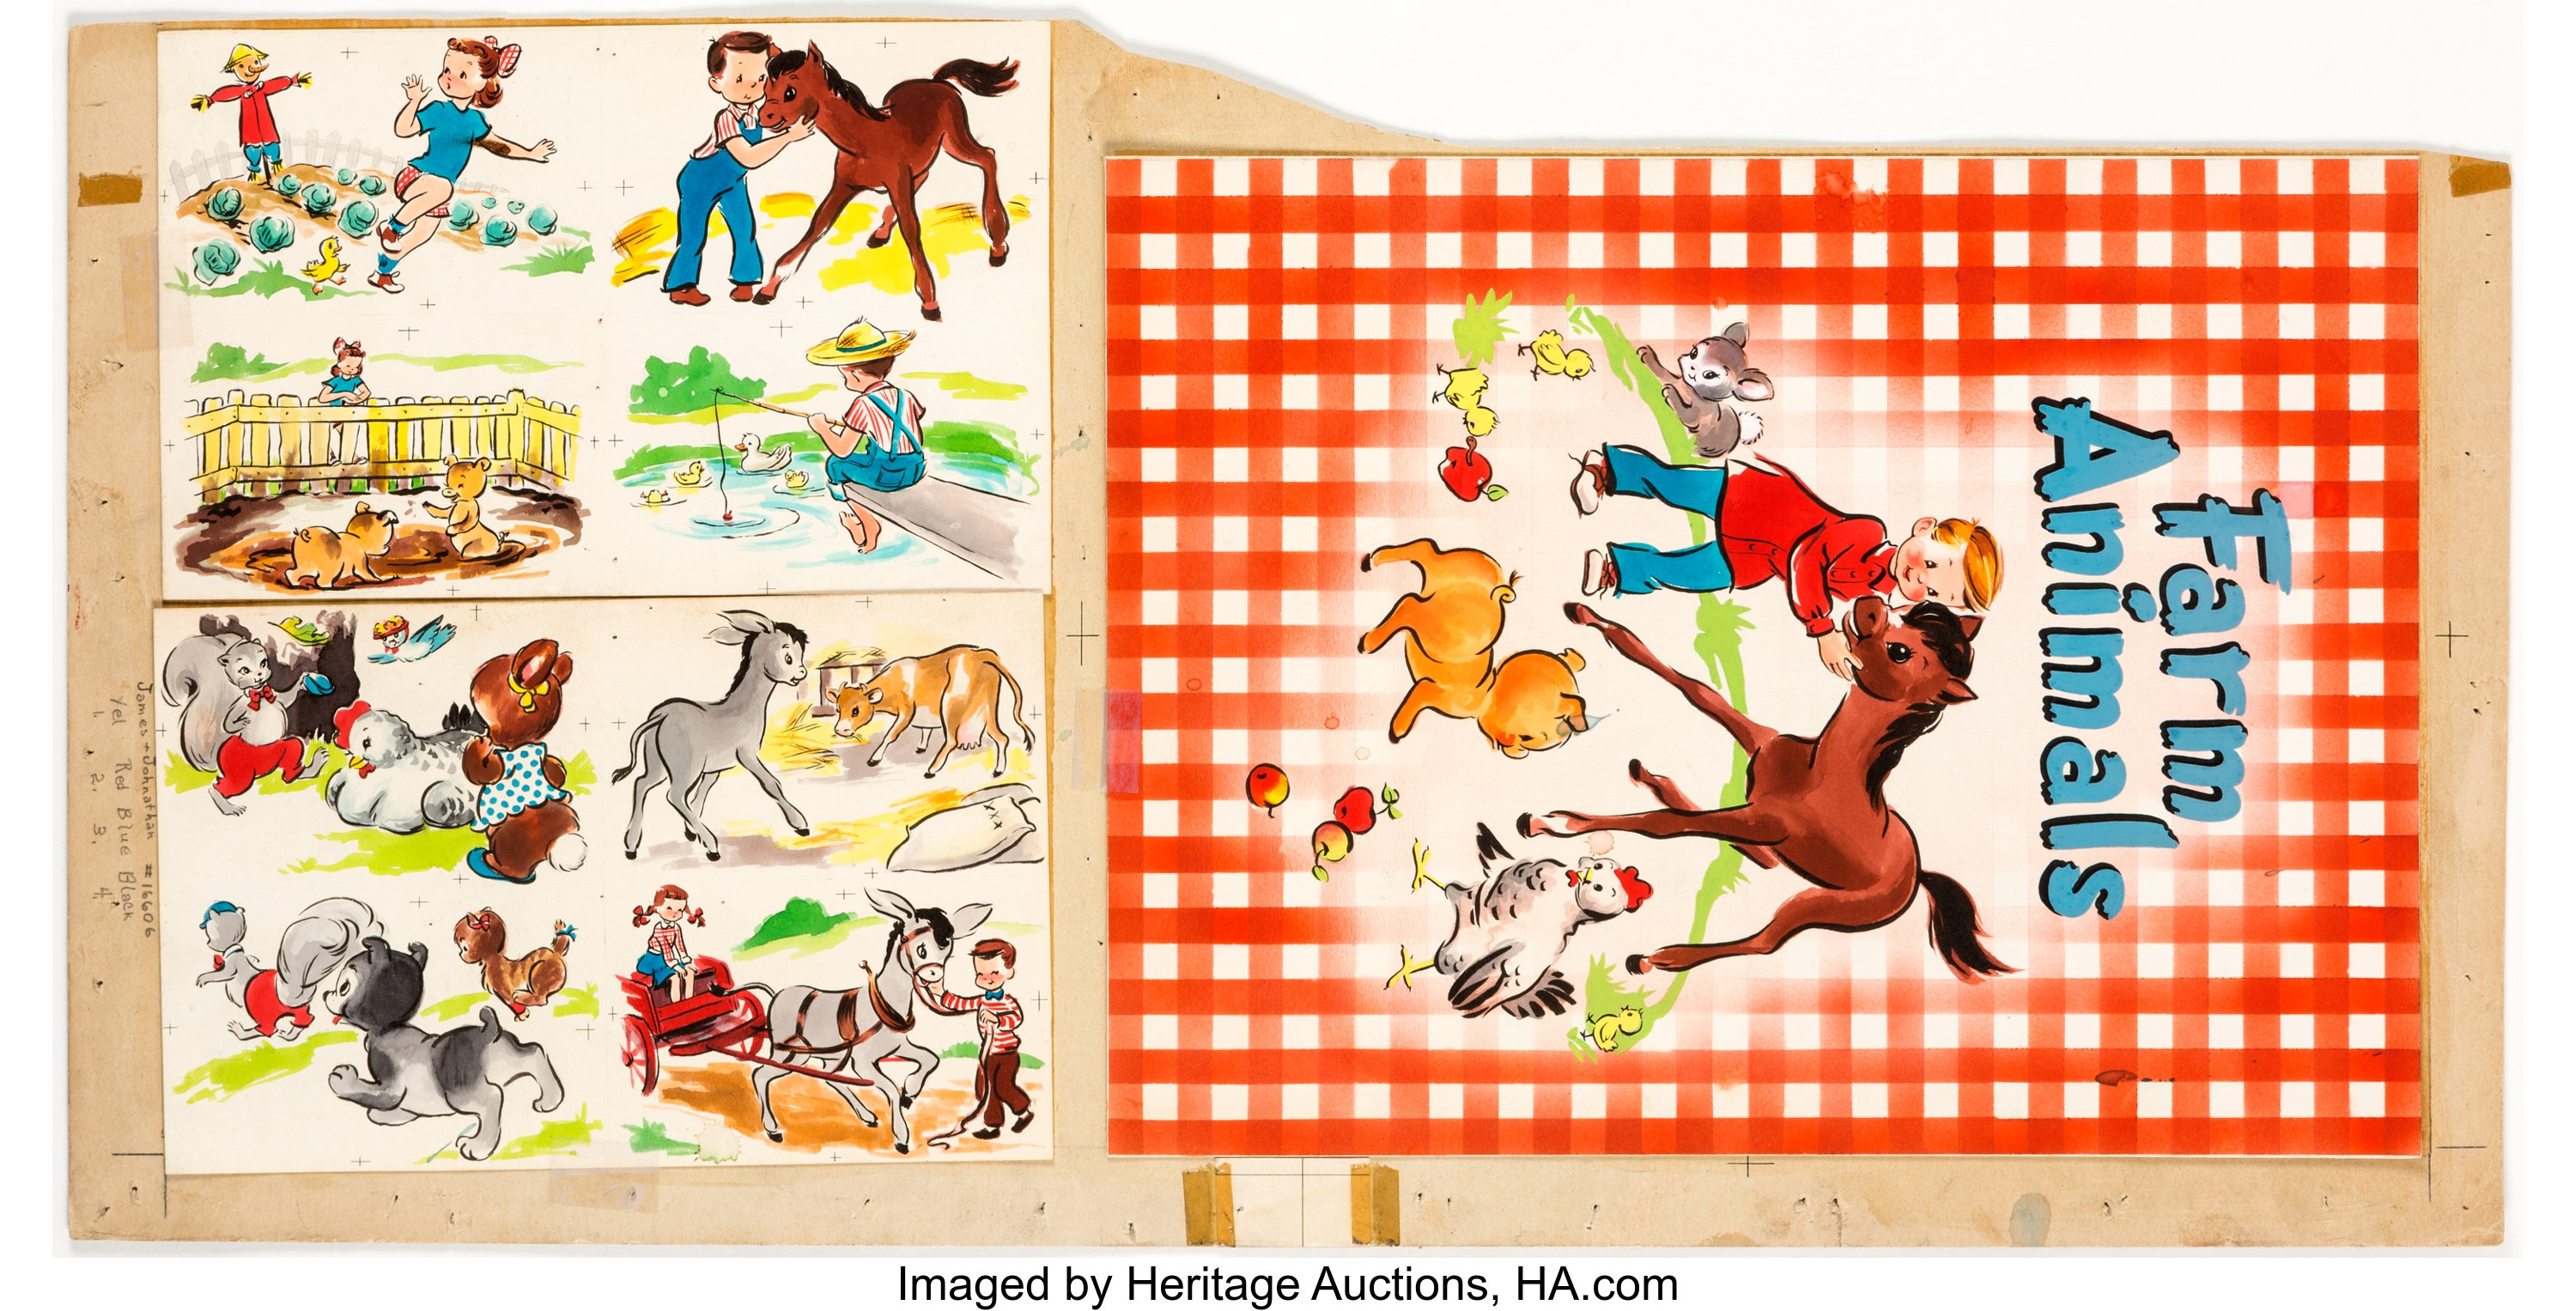 Farm Animals Book Cover And Spot Illustration Original Art Group Lot 13405 Heritage Auctions